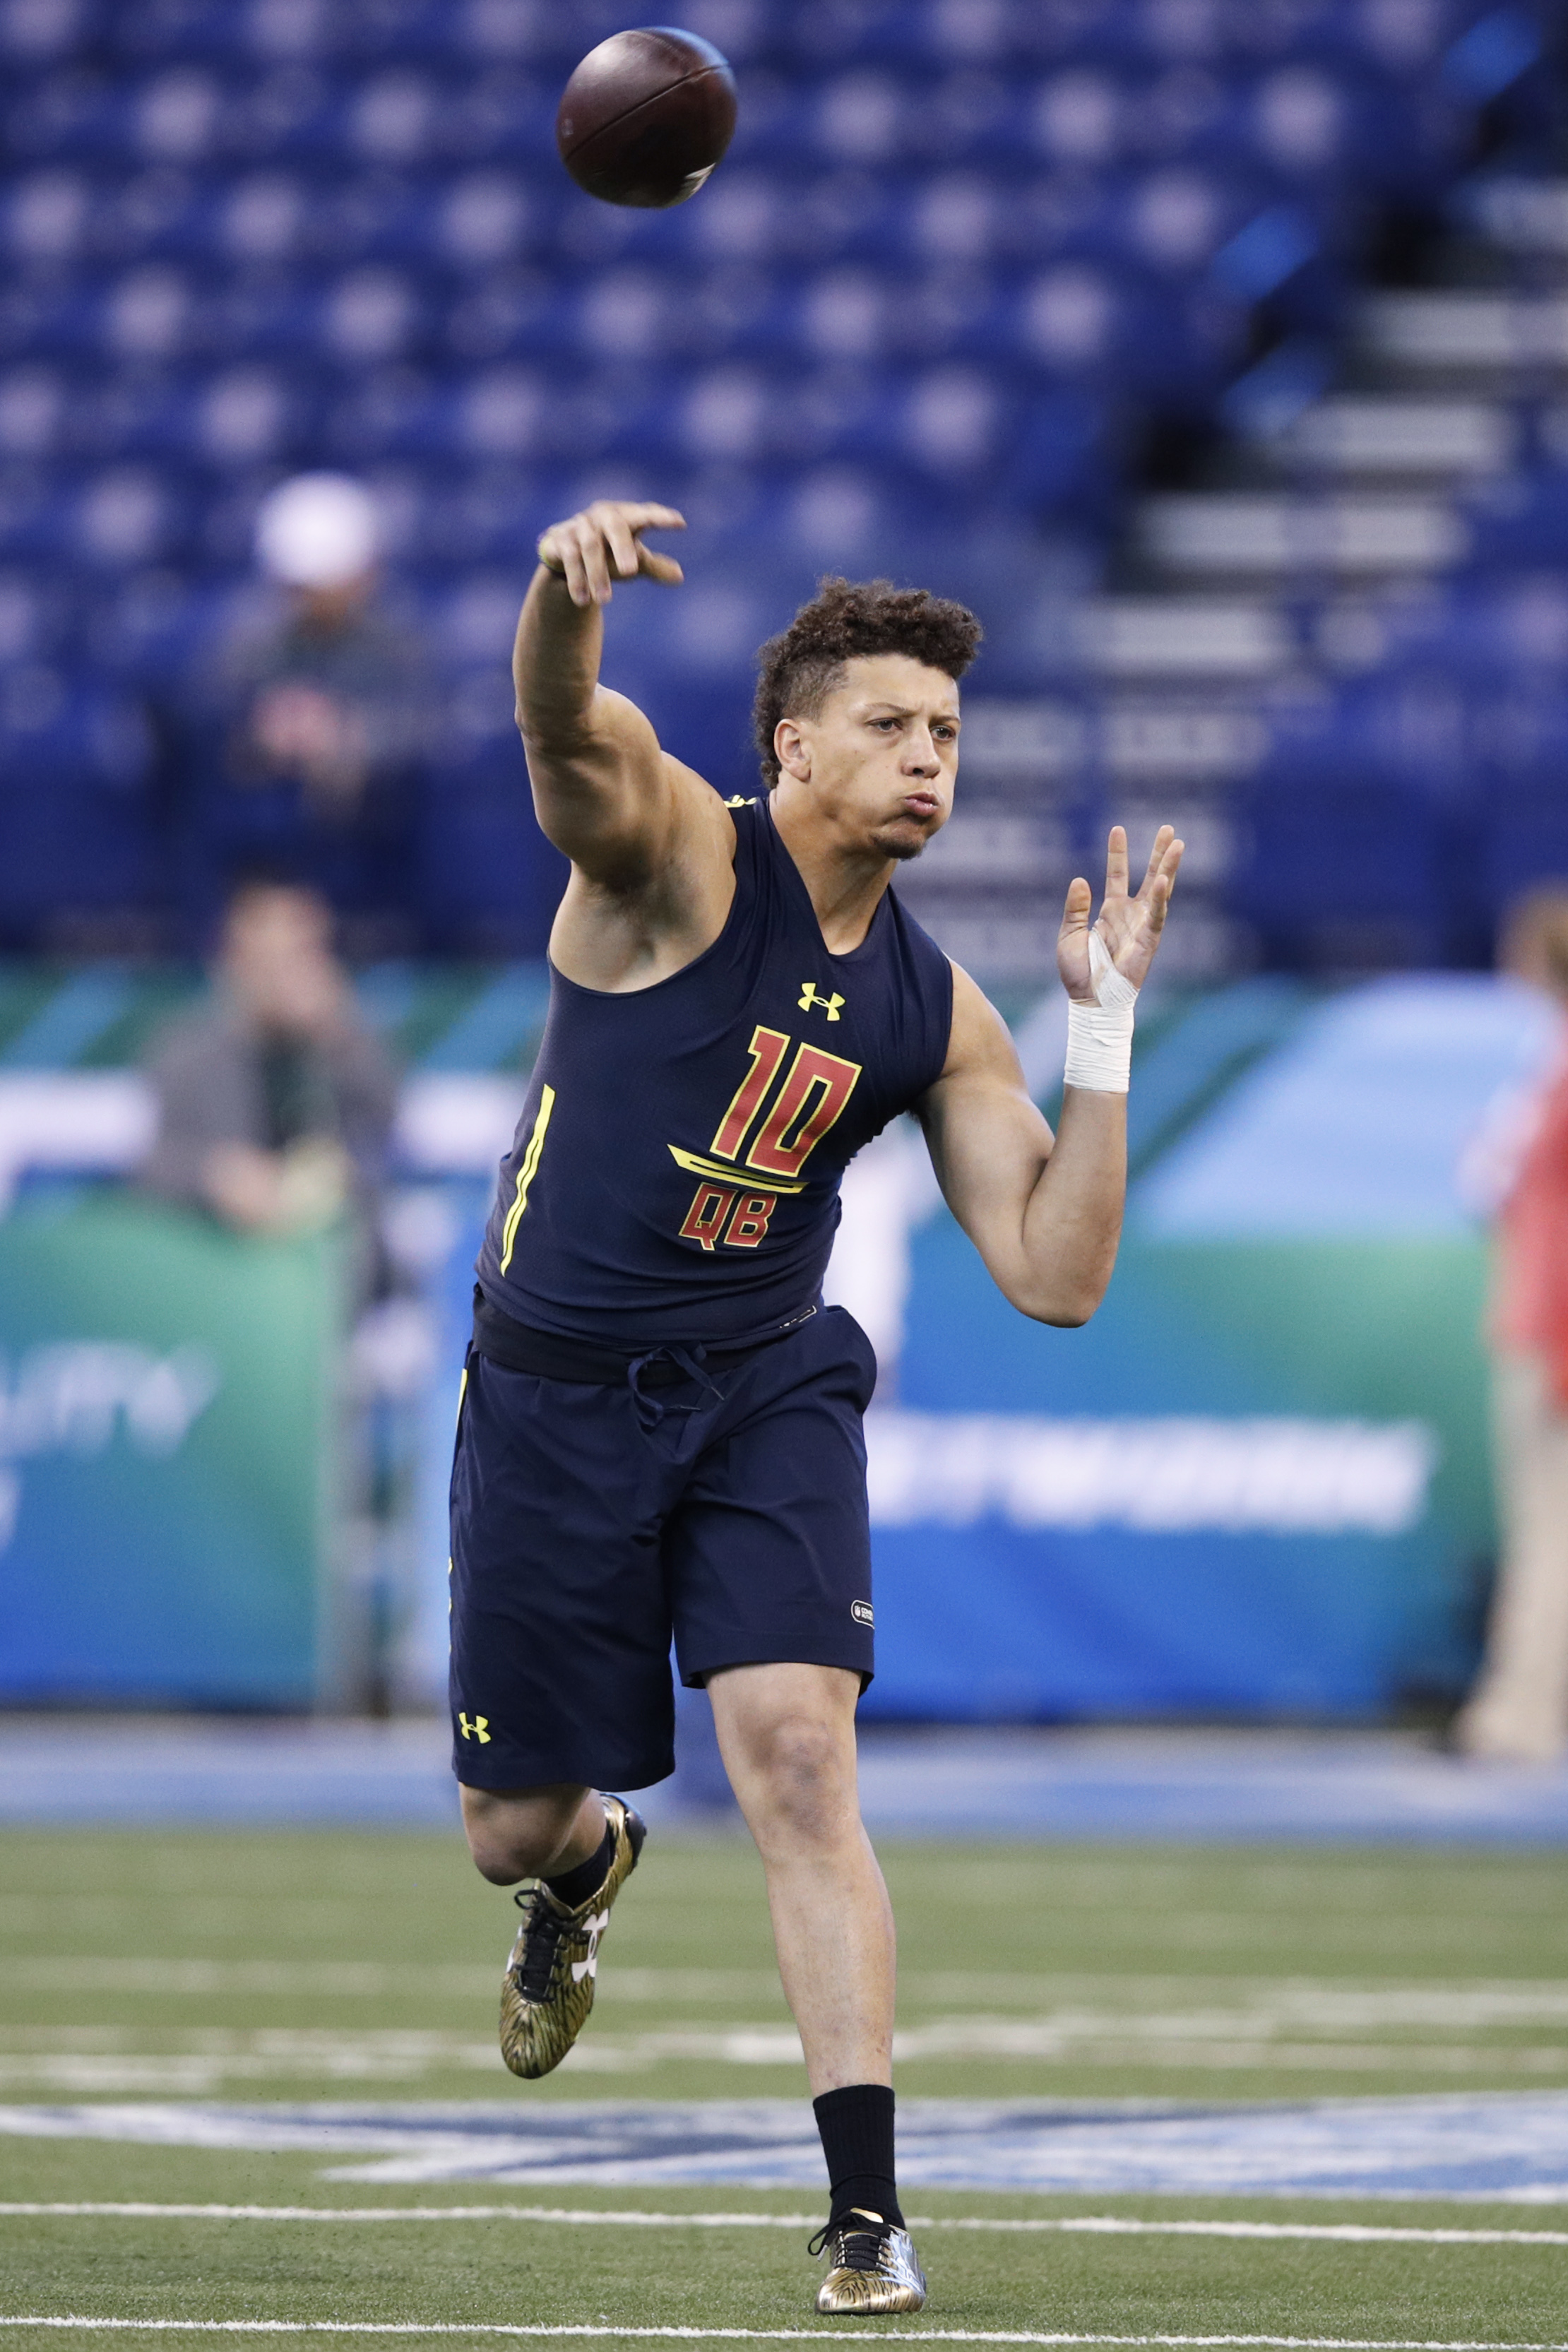 Kansas City Chiefs Trade Up To Draft Texas Tech Quarterback